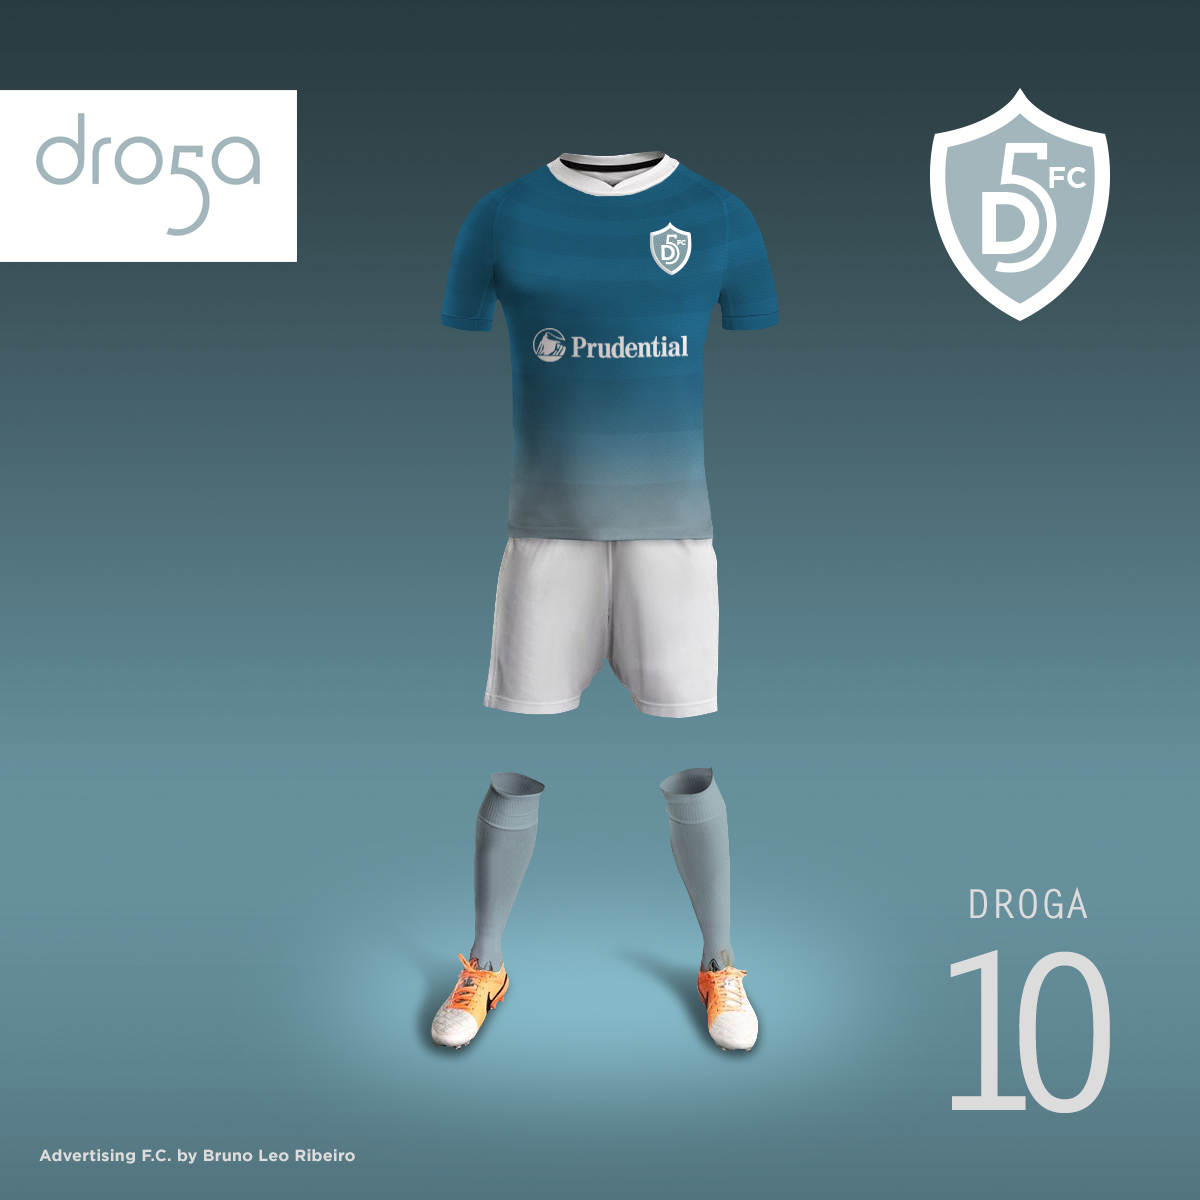 When Design Football And Advertising Agencies Get Together